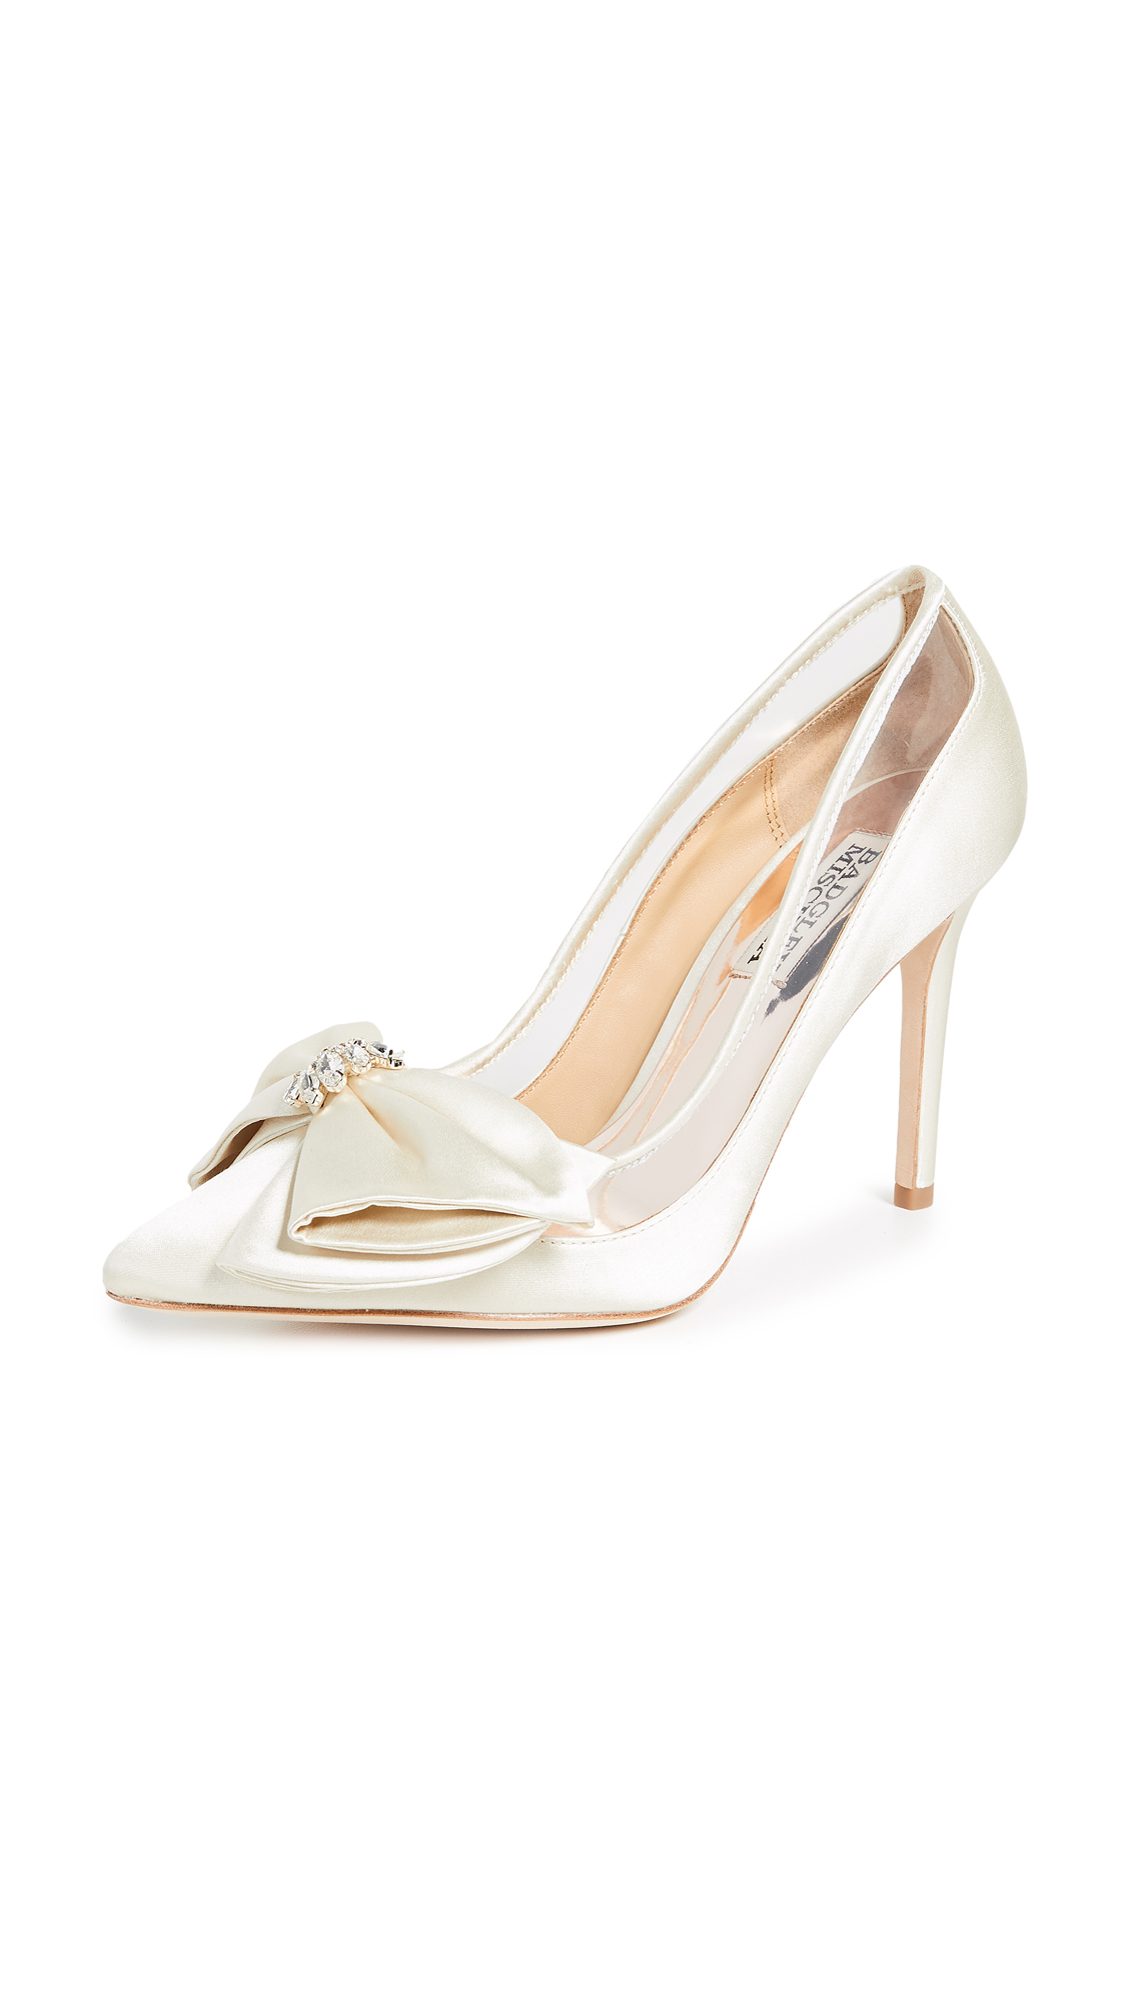 Badgley Mischka Frances Point Toe Pumps - Ivory